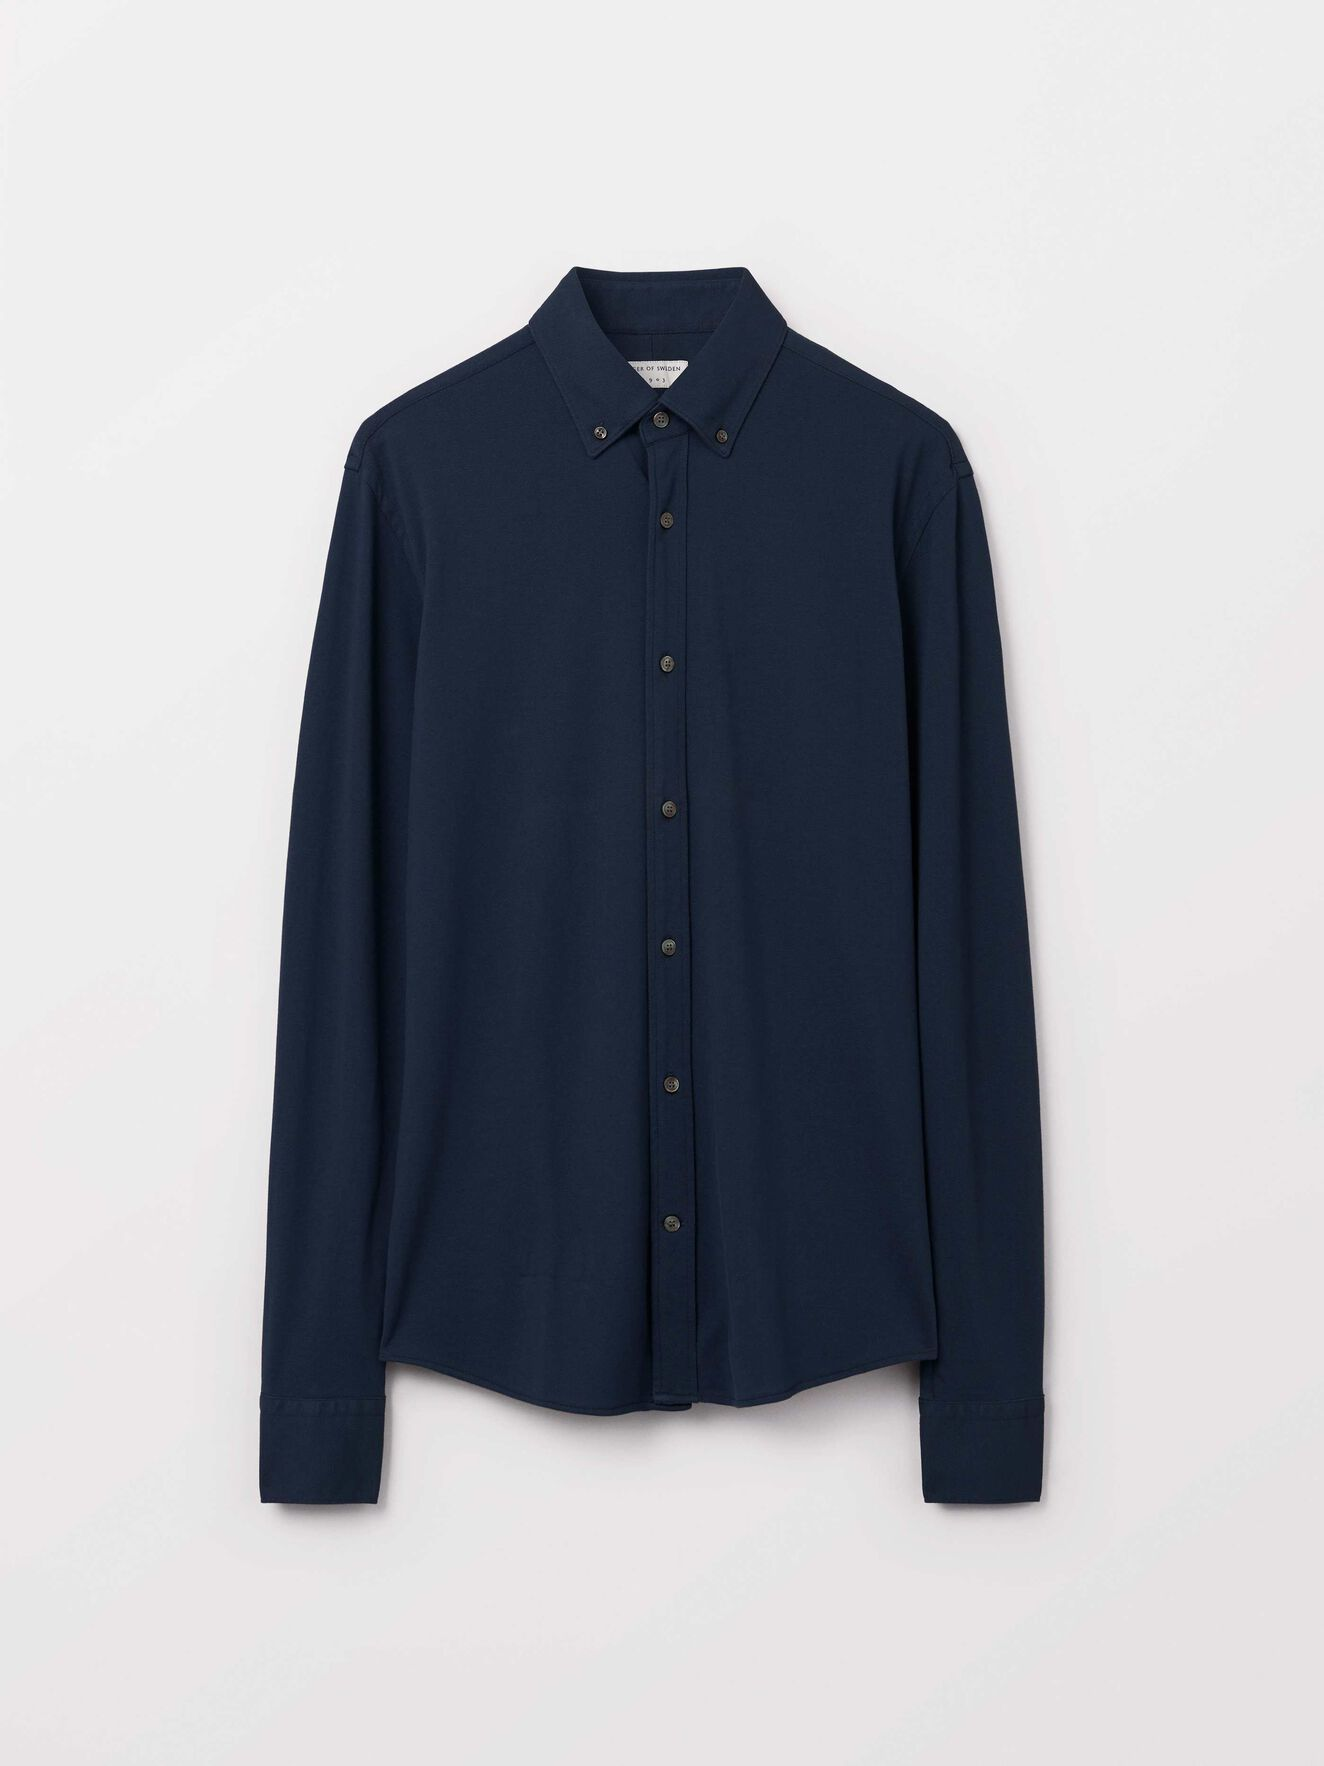 Fenald Shirt in Purple Blue from Tiger of Sweden